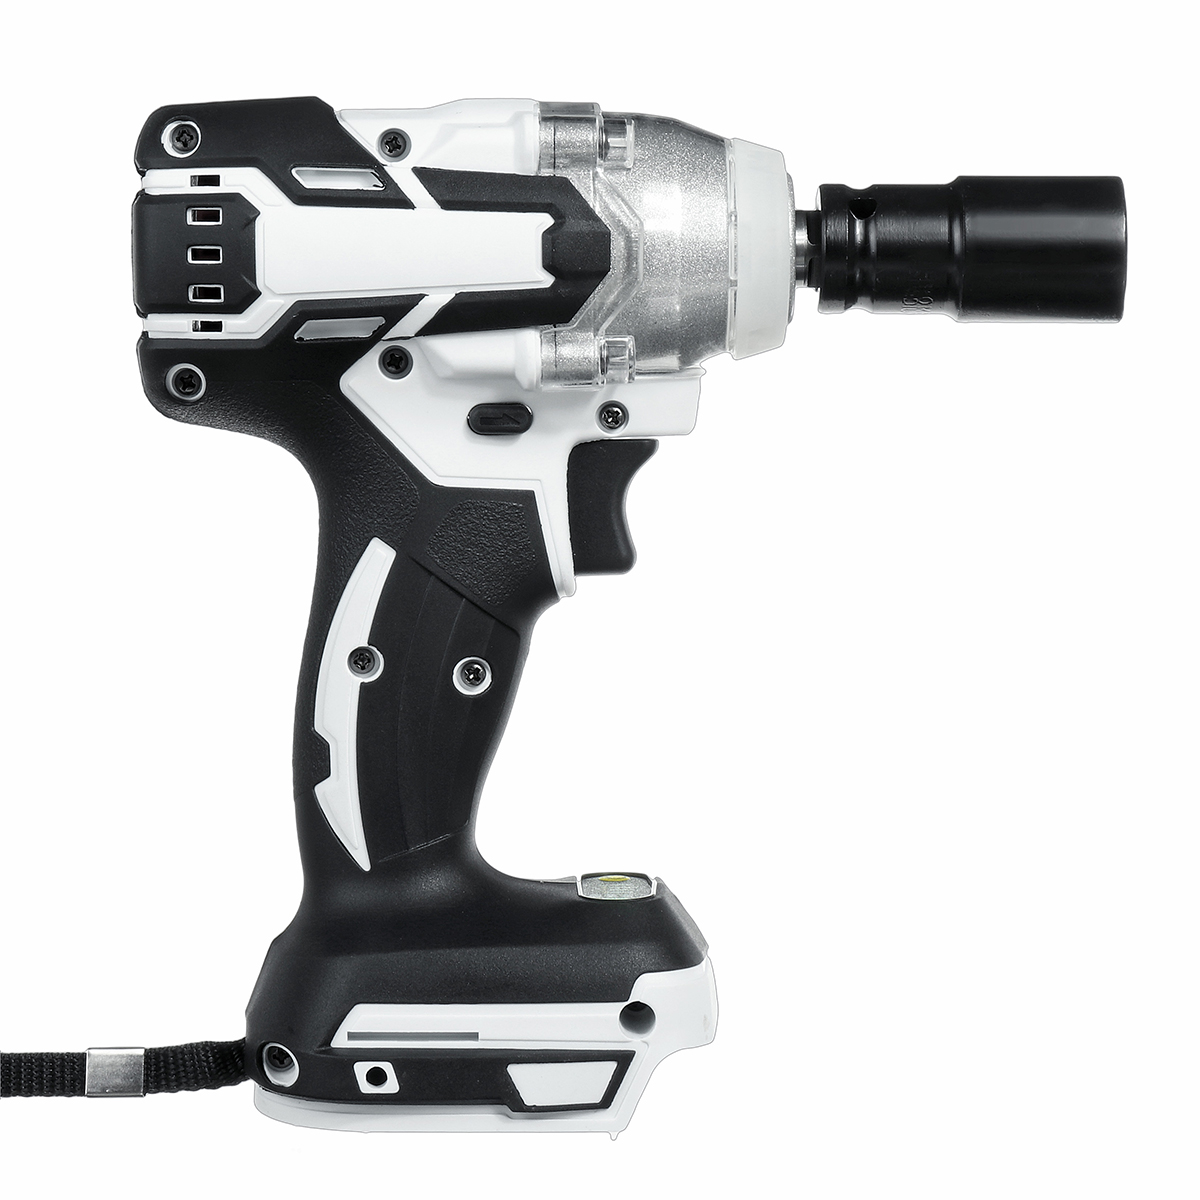 18V 520N.m. Li-Ion Cordless Brushless 1/2'' Electric Impact Wrench Driver Compitable for Makita 18V Battery